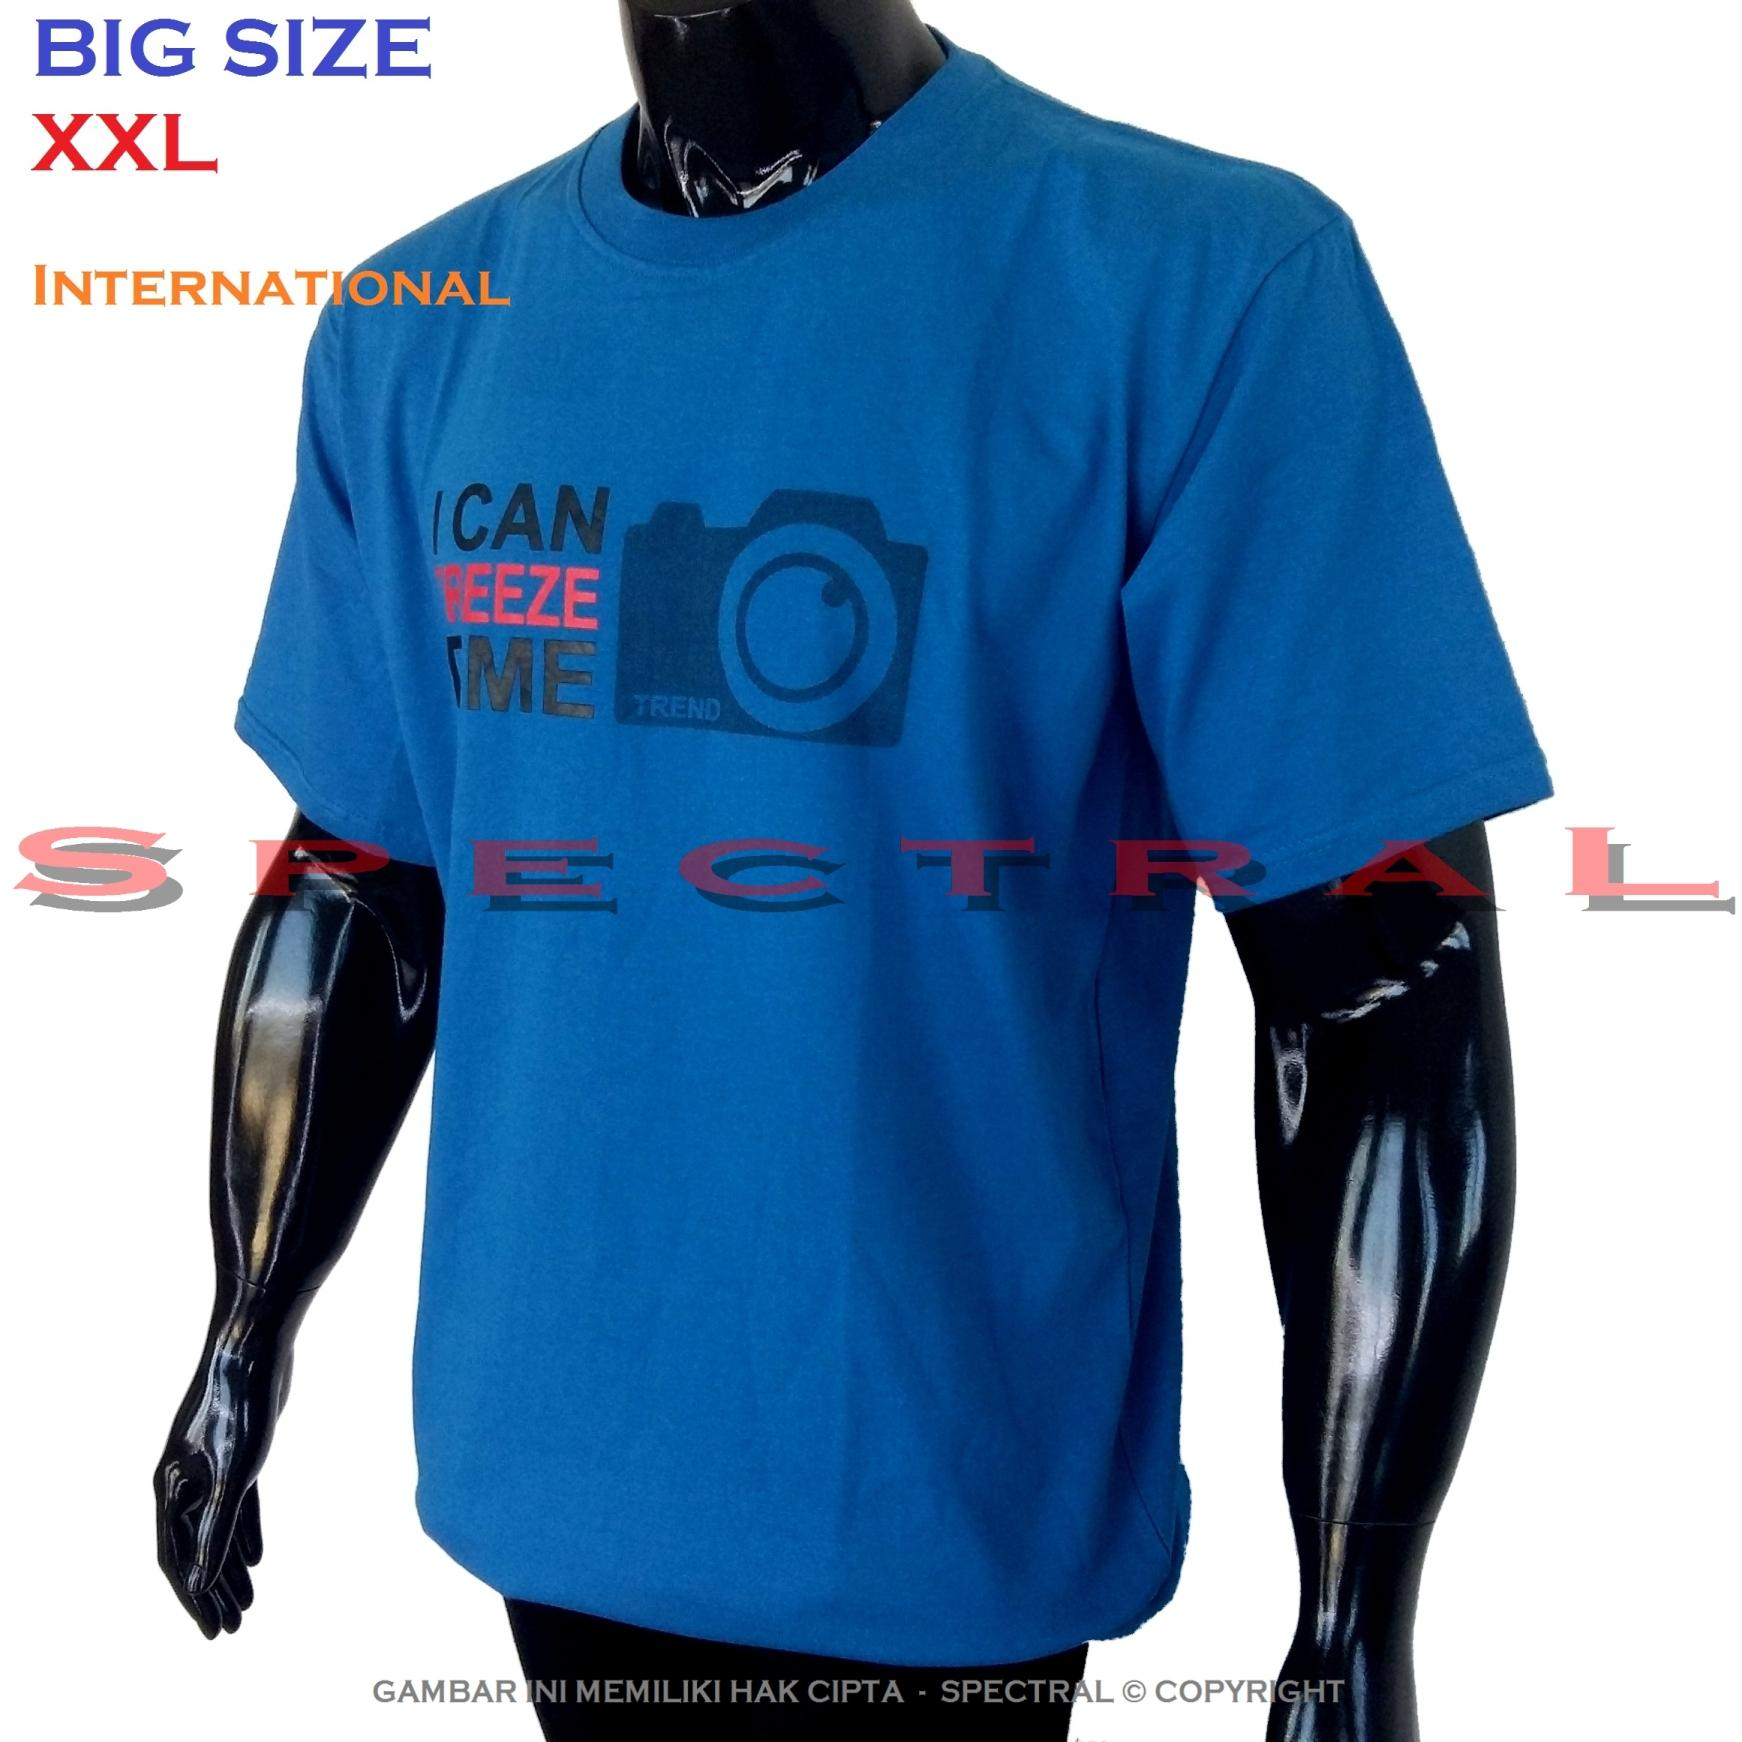 Spectral – BIG SIZE XXL INTERNATIONAL 100% Soft Cotton Combed Kaos Distro Jumbo BIGSIZE T-Shirt Fashion Ukuran Besar Polos Celana Atasan Pria Wanita Katun Bapak Orang Tua Gemuk Gendut Lengan Simple Sport Casual 2L 2XL Baju Cowo Cewe Pakaian Terbaru I CAN